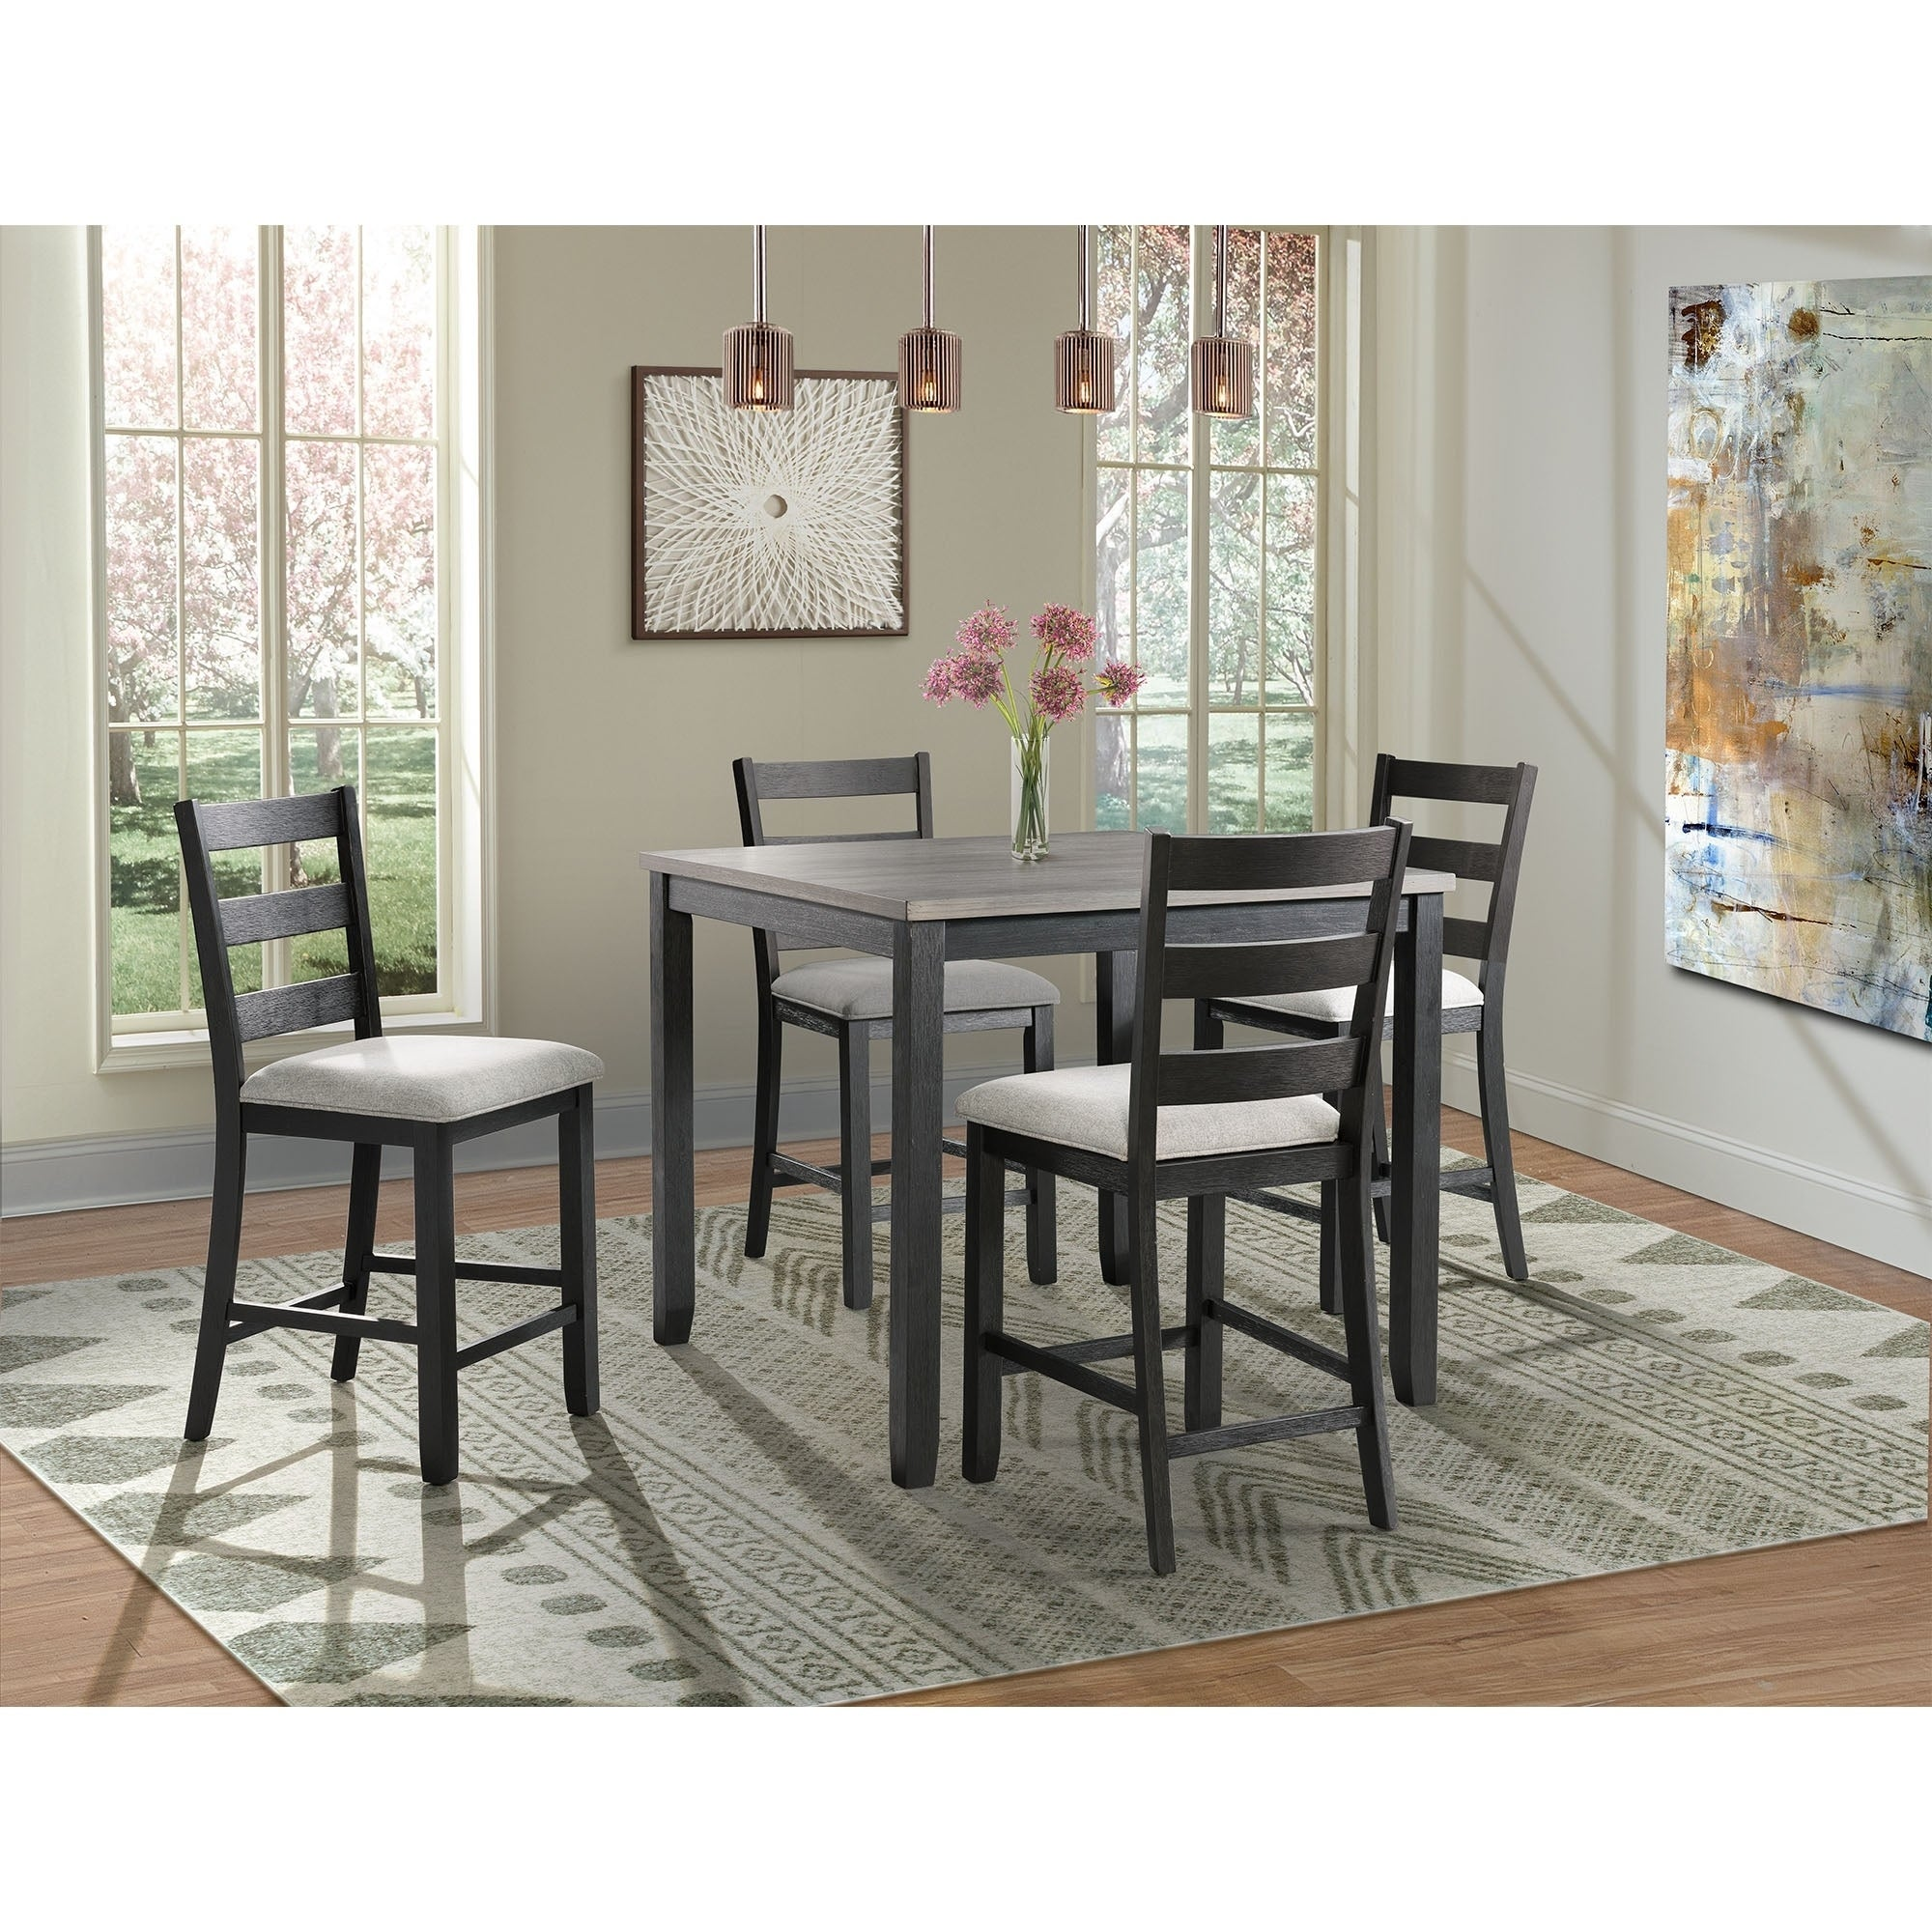 Tremendous Buy Counter Height Kitchen Dining Room Sets Online At Spiritservingveterans Wood Chair Design Ideas Spiritservingveteransorg